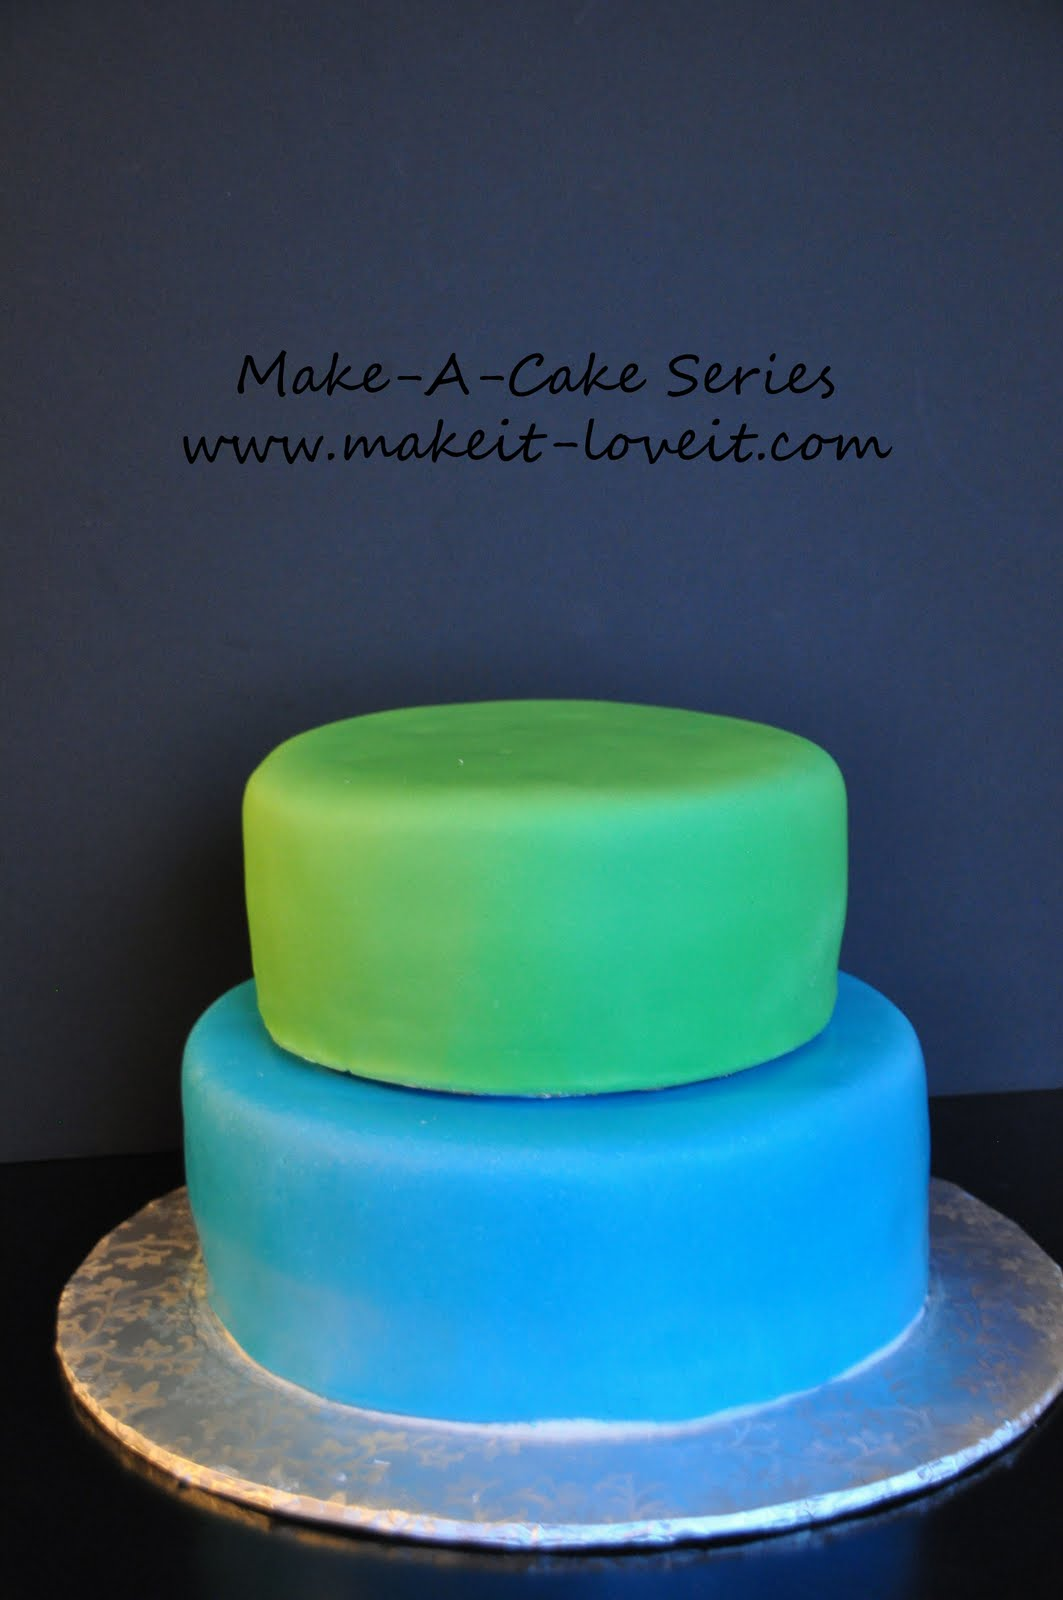 Make A Cake Series: Filling and Stacking a Cake – Make It and Love It